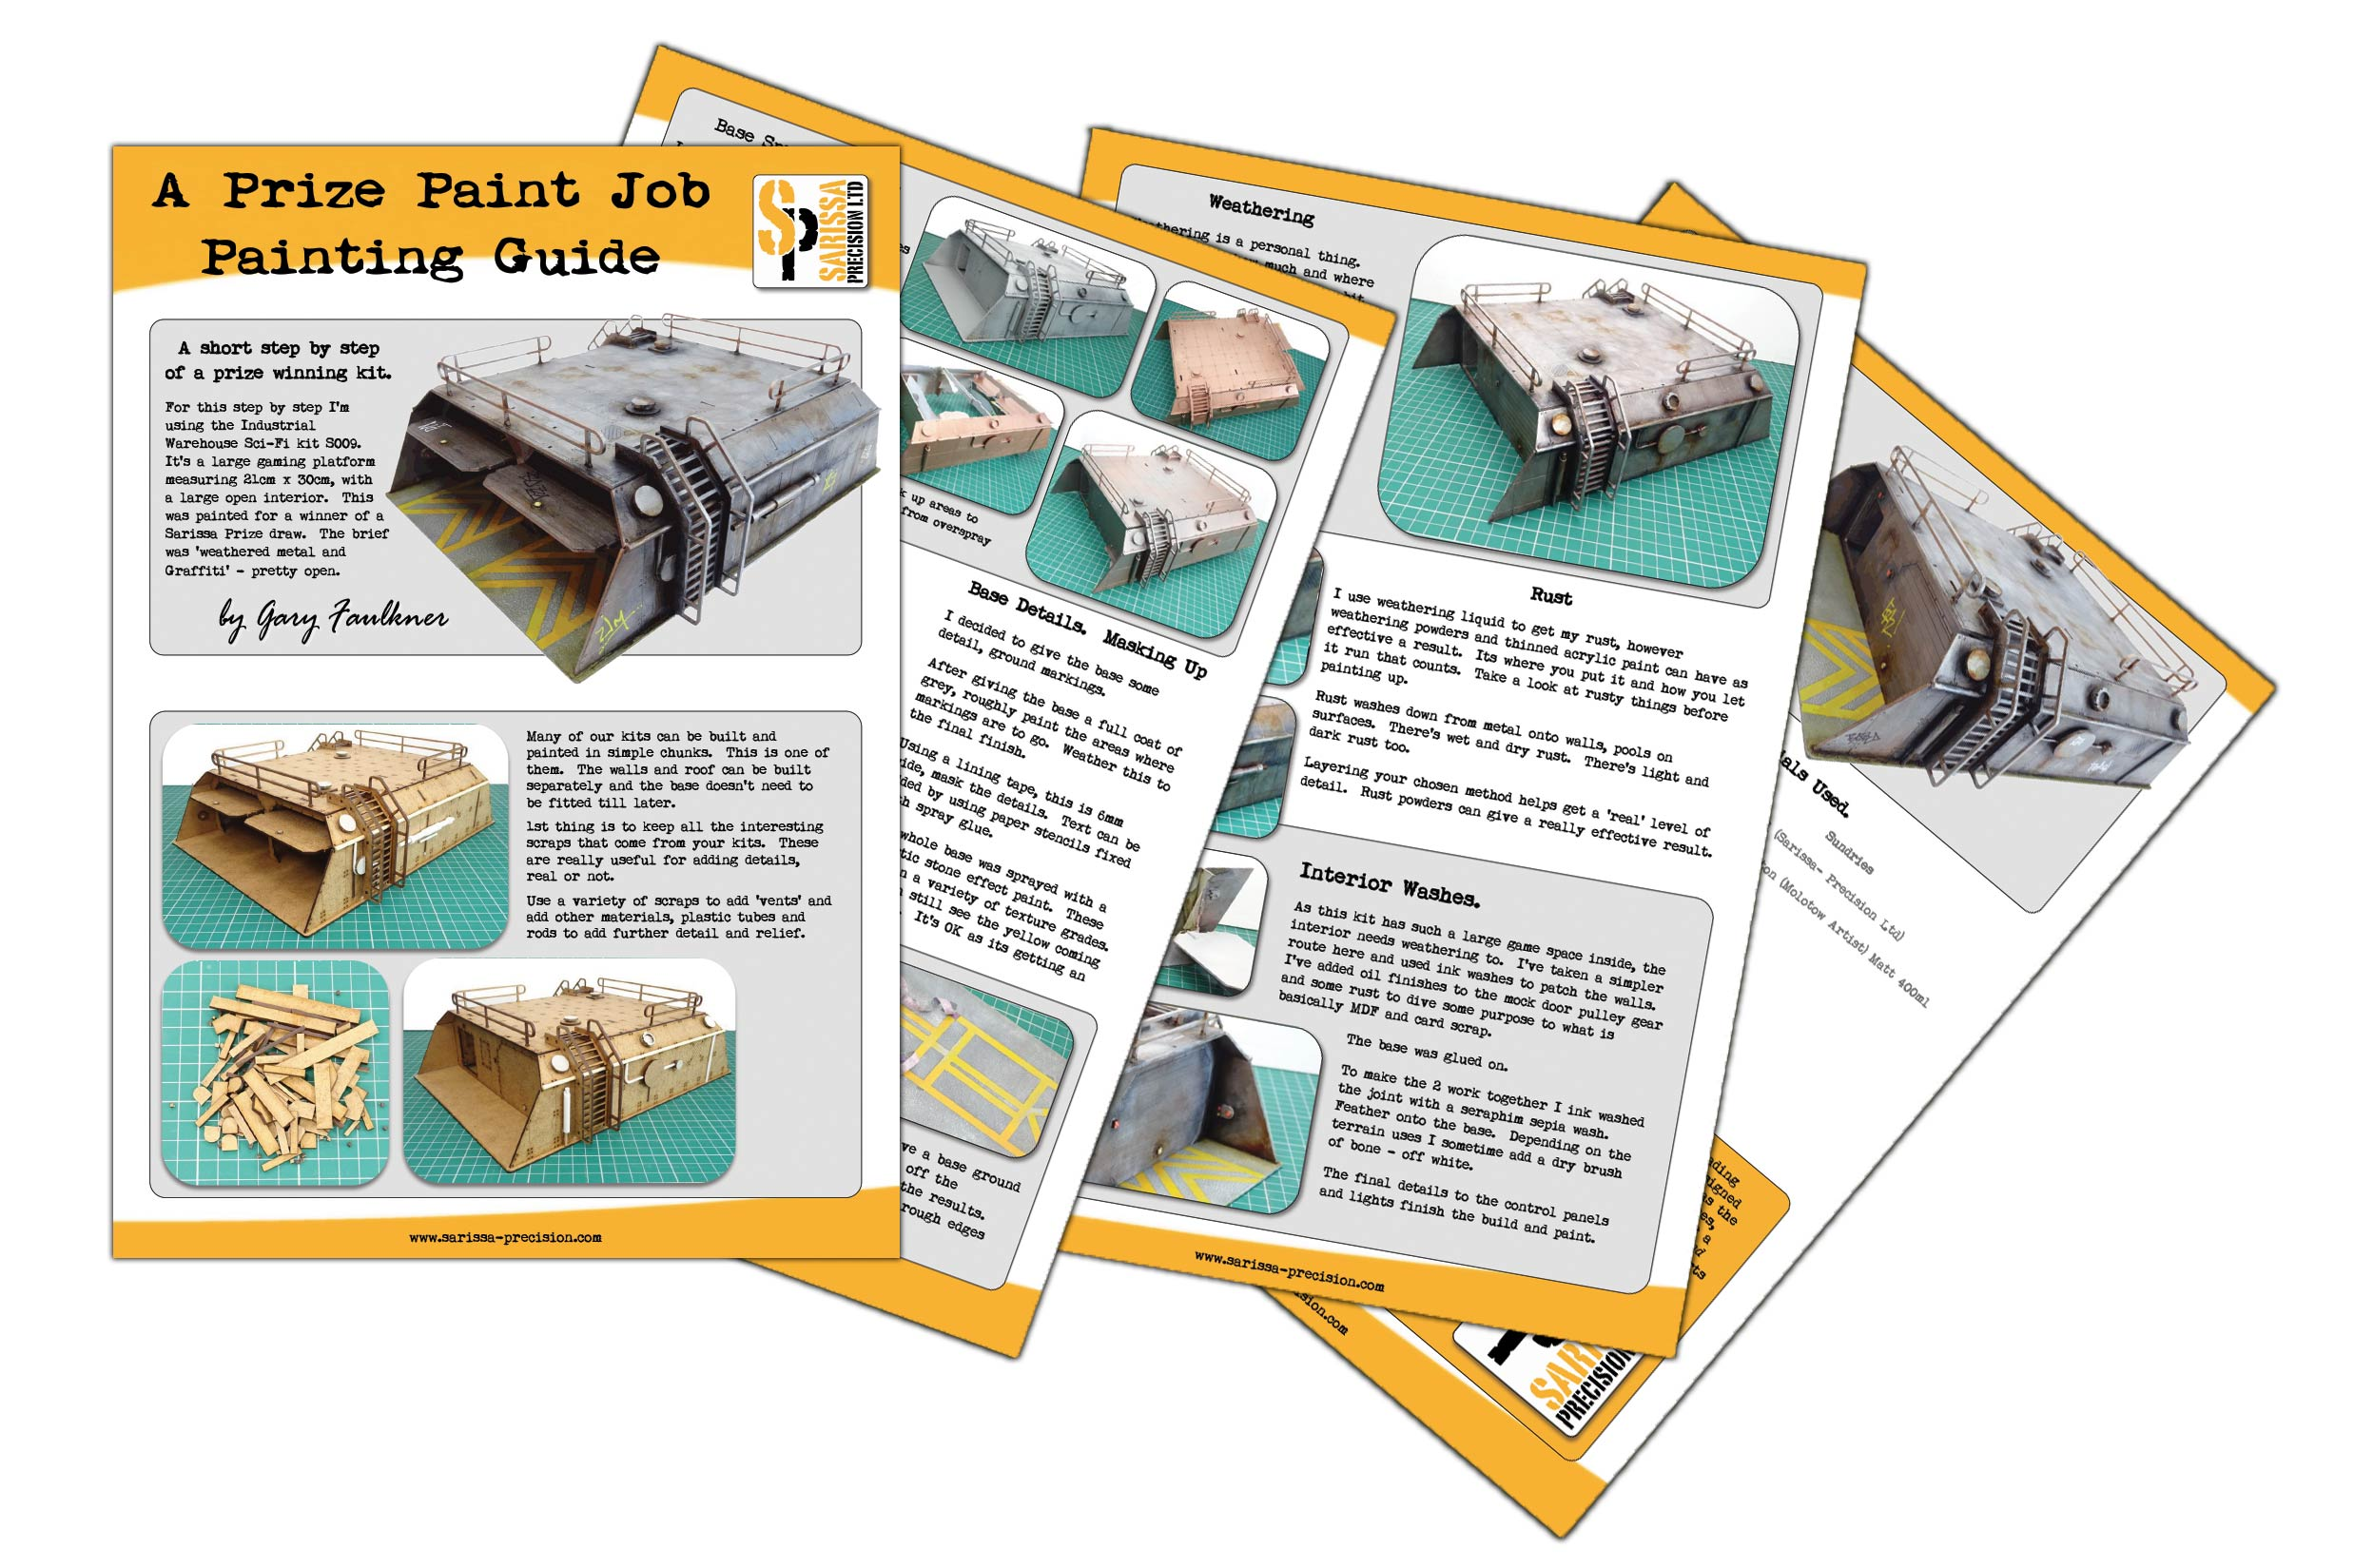 FREE: A Prize Paint Job Painting Guide